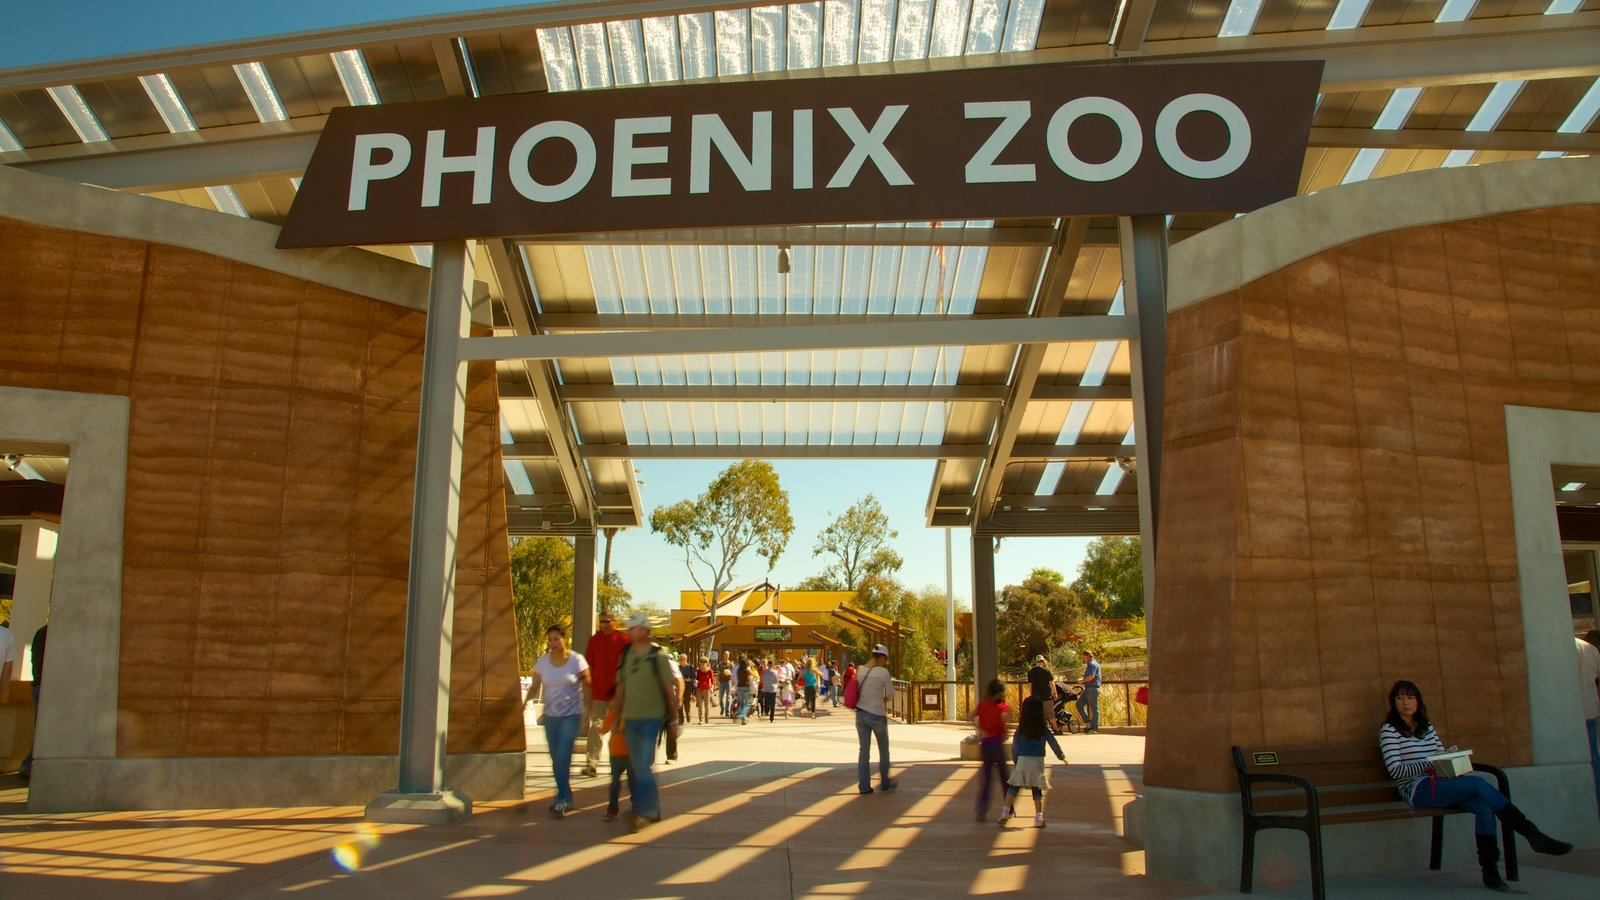 Phoenix Zoo has dedicated itself to raising awareness to ecological and wildlife education and preservation. Members of the zoo enjoy a bevy of benefits that are certain to heighten their appreciation of the natural world, while providing them with a wonderful experience at the park.